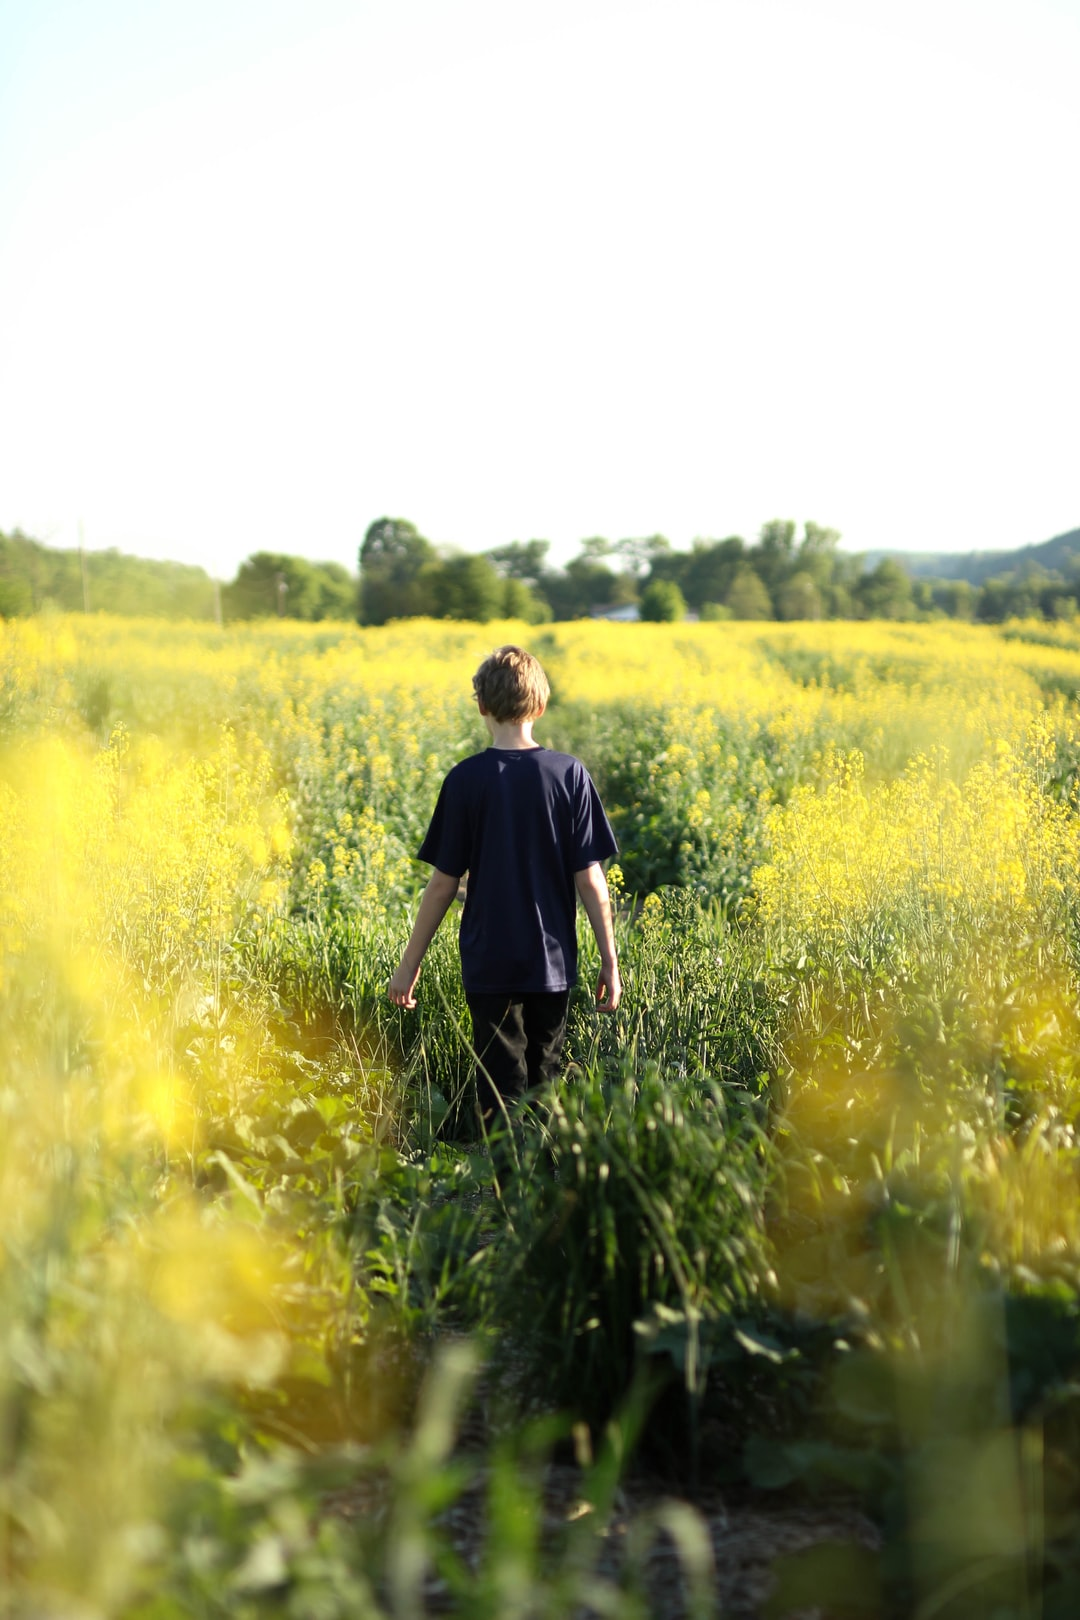 A boy standing in a field of yellow flowers.